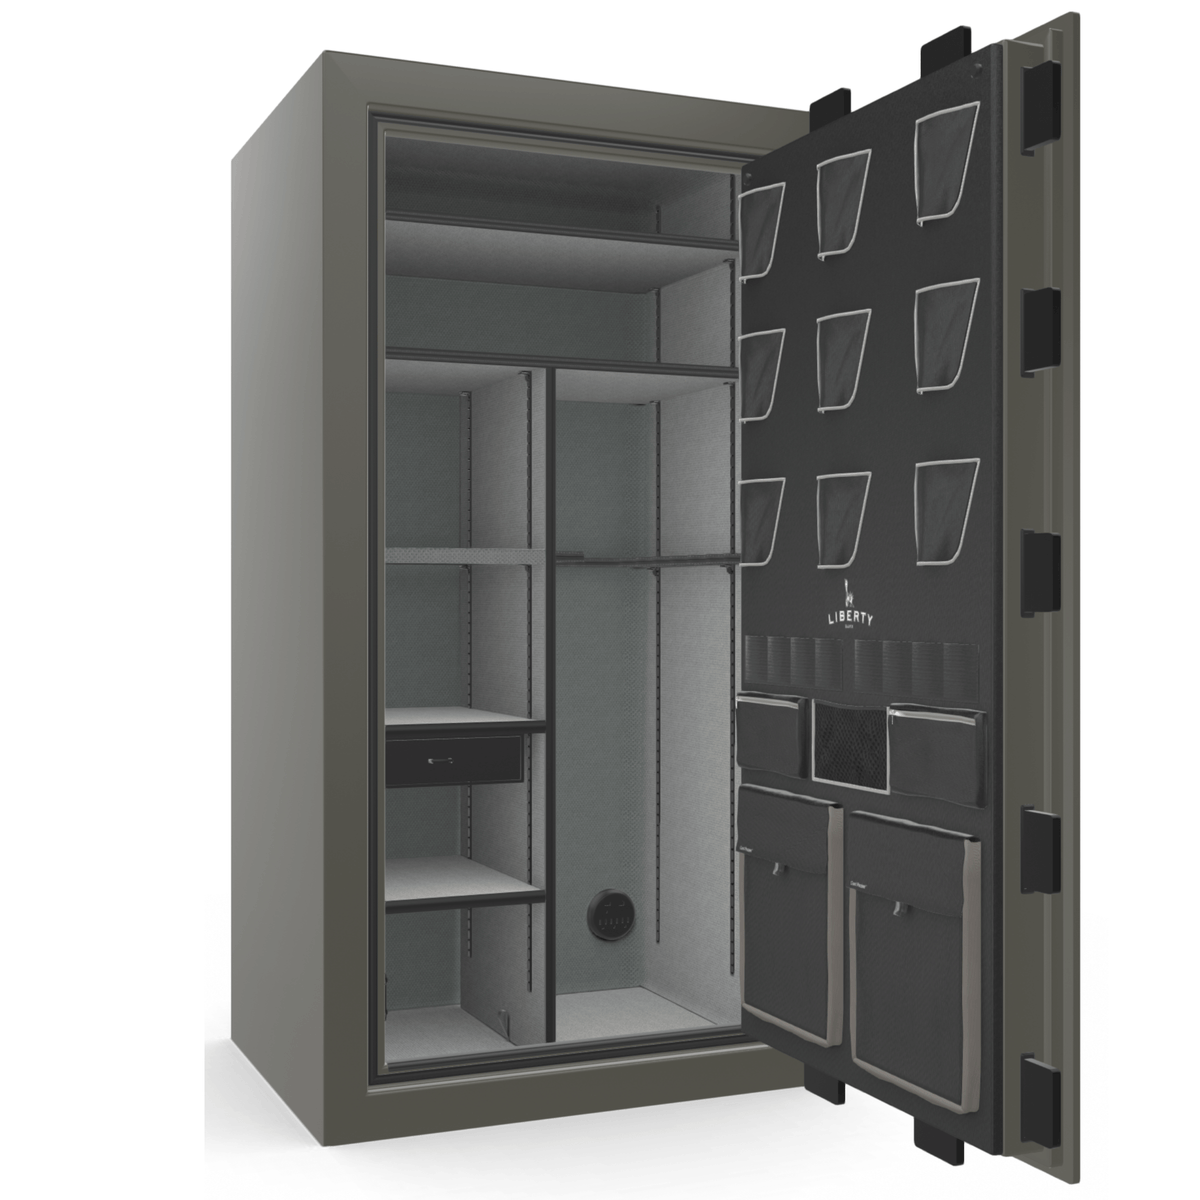 "Classic Plus | 40 | Level 7 Security | 110 Minute Fire Protection | Gray 2-Tone | Black Electronic Lock | 65.5""(H) x 36""(W) x 32""(D)"